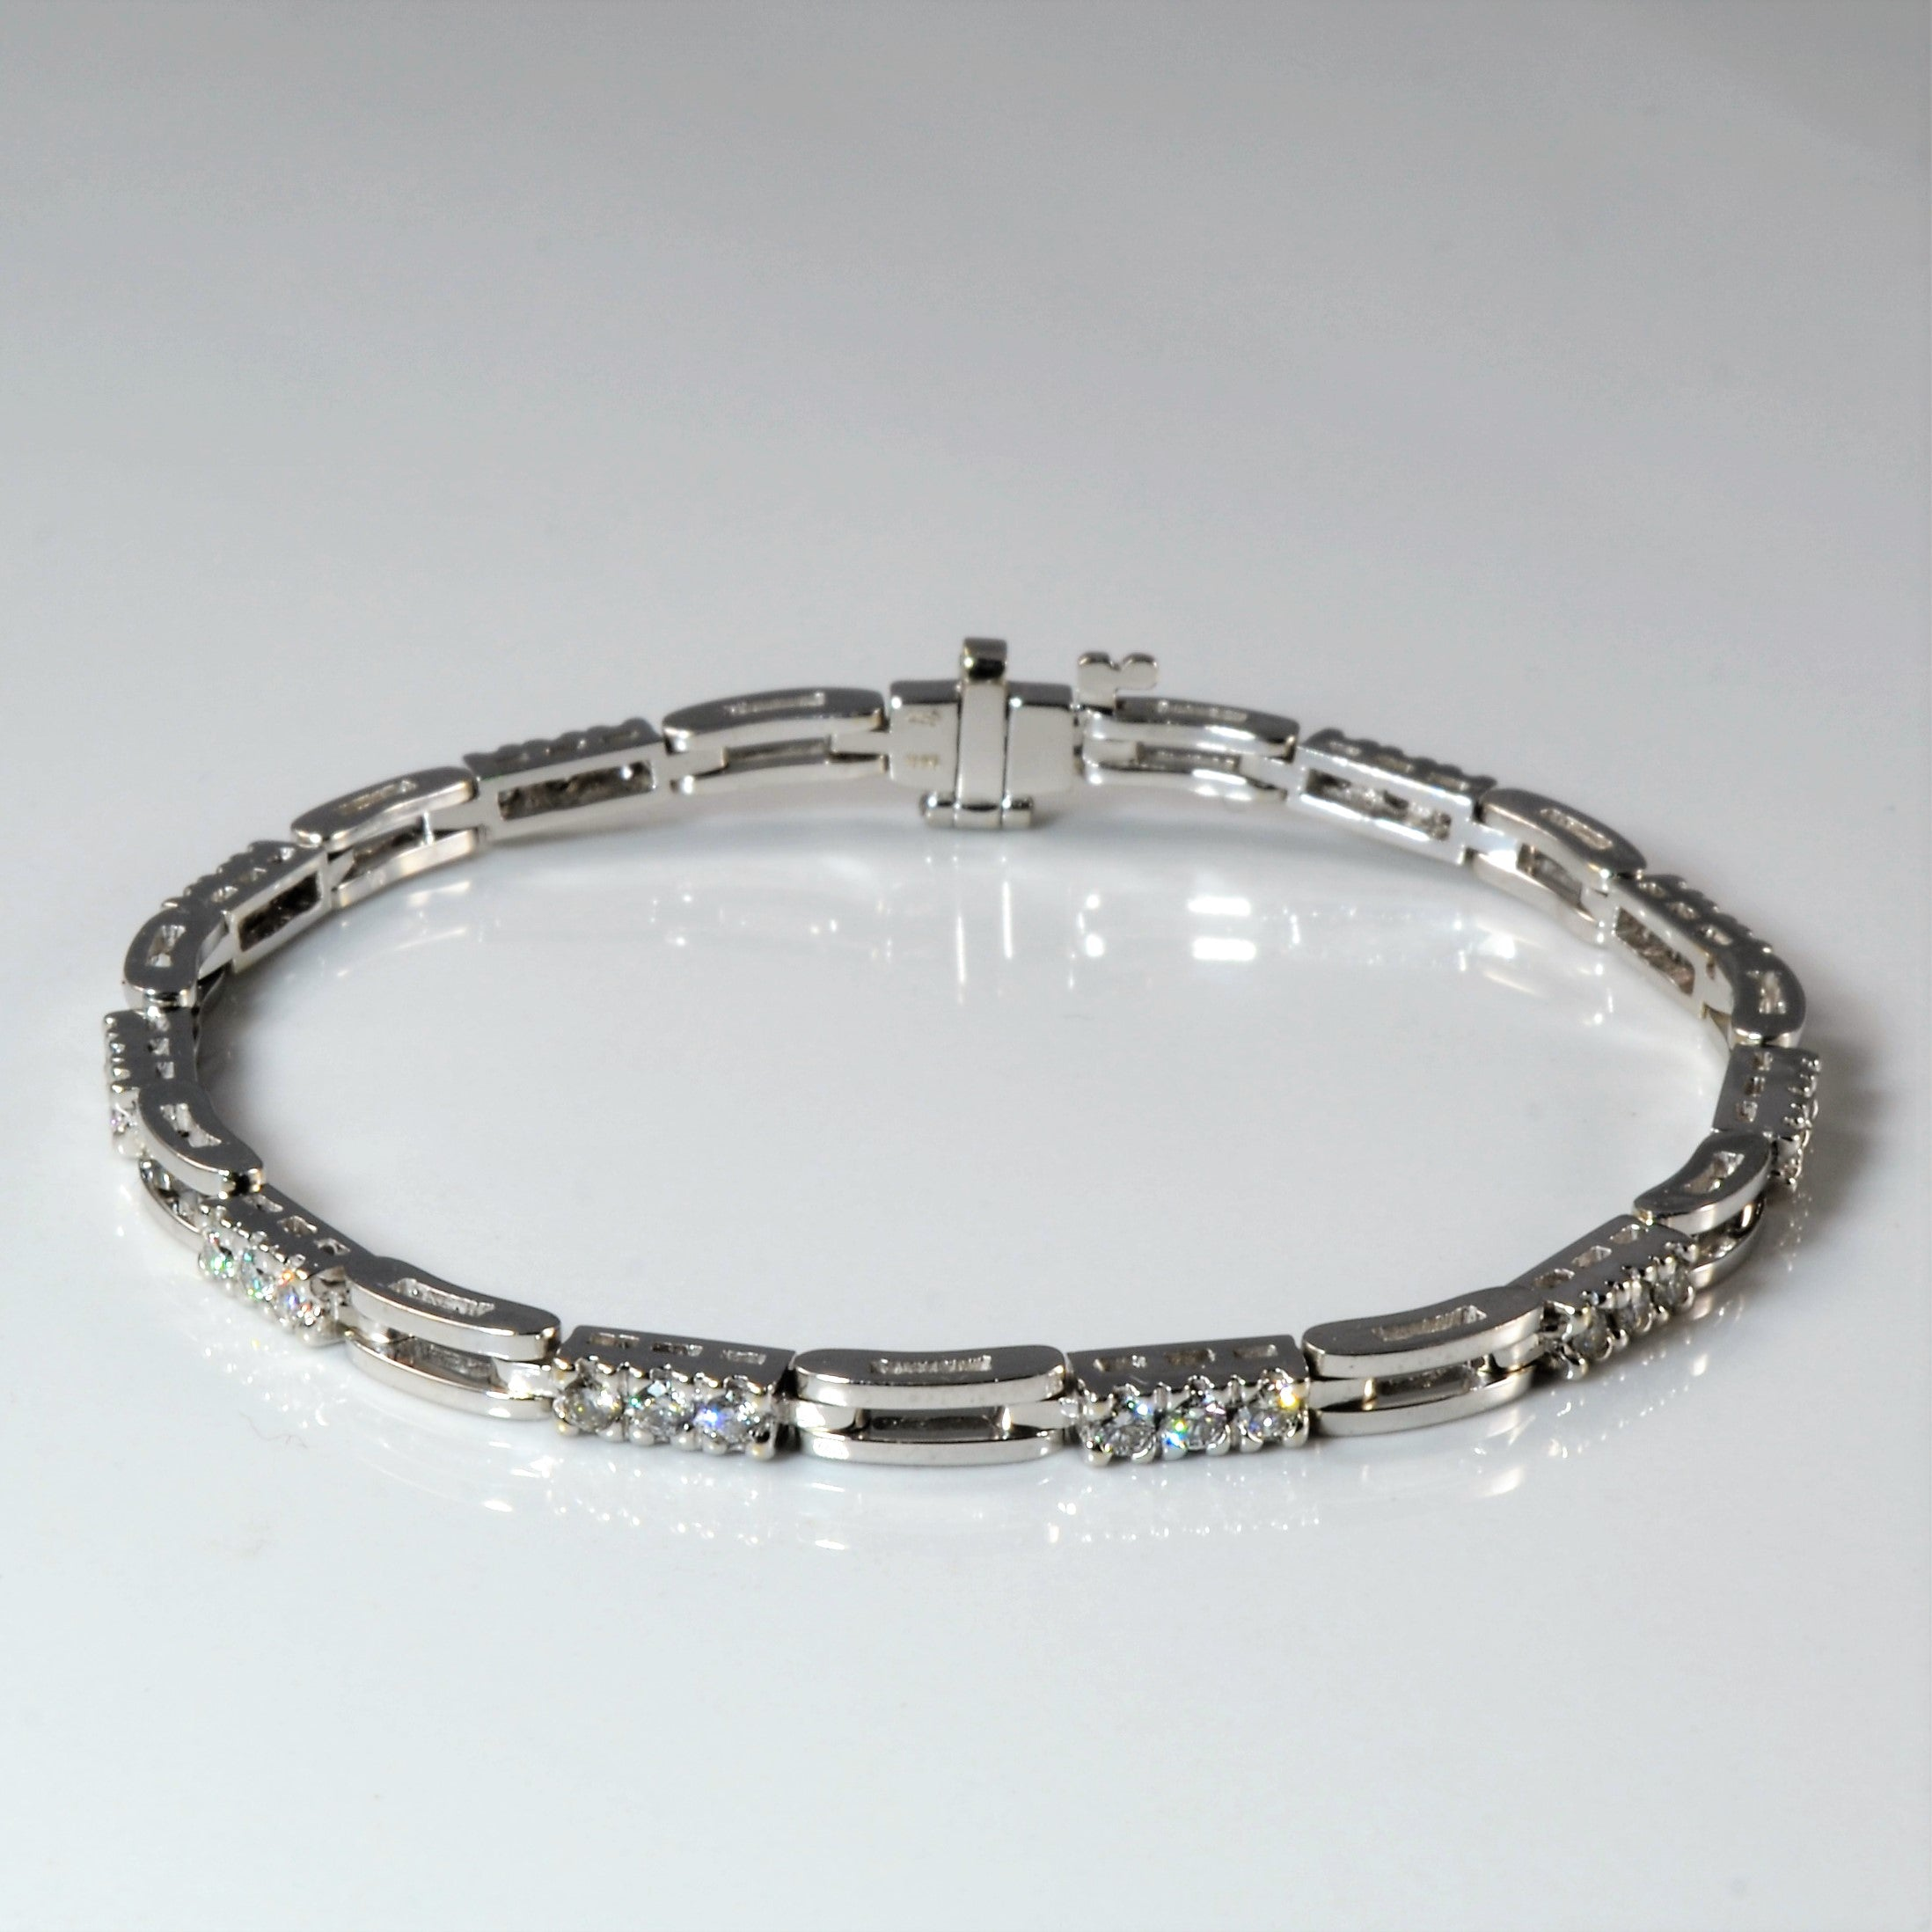 White Gold Diamond Tennis Bracelet | 1.00ctw | 7.5"